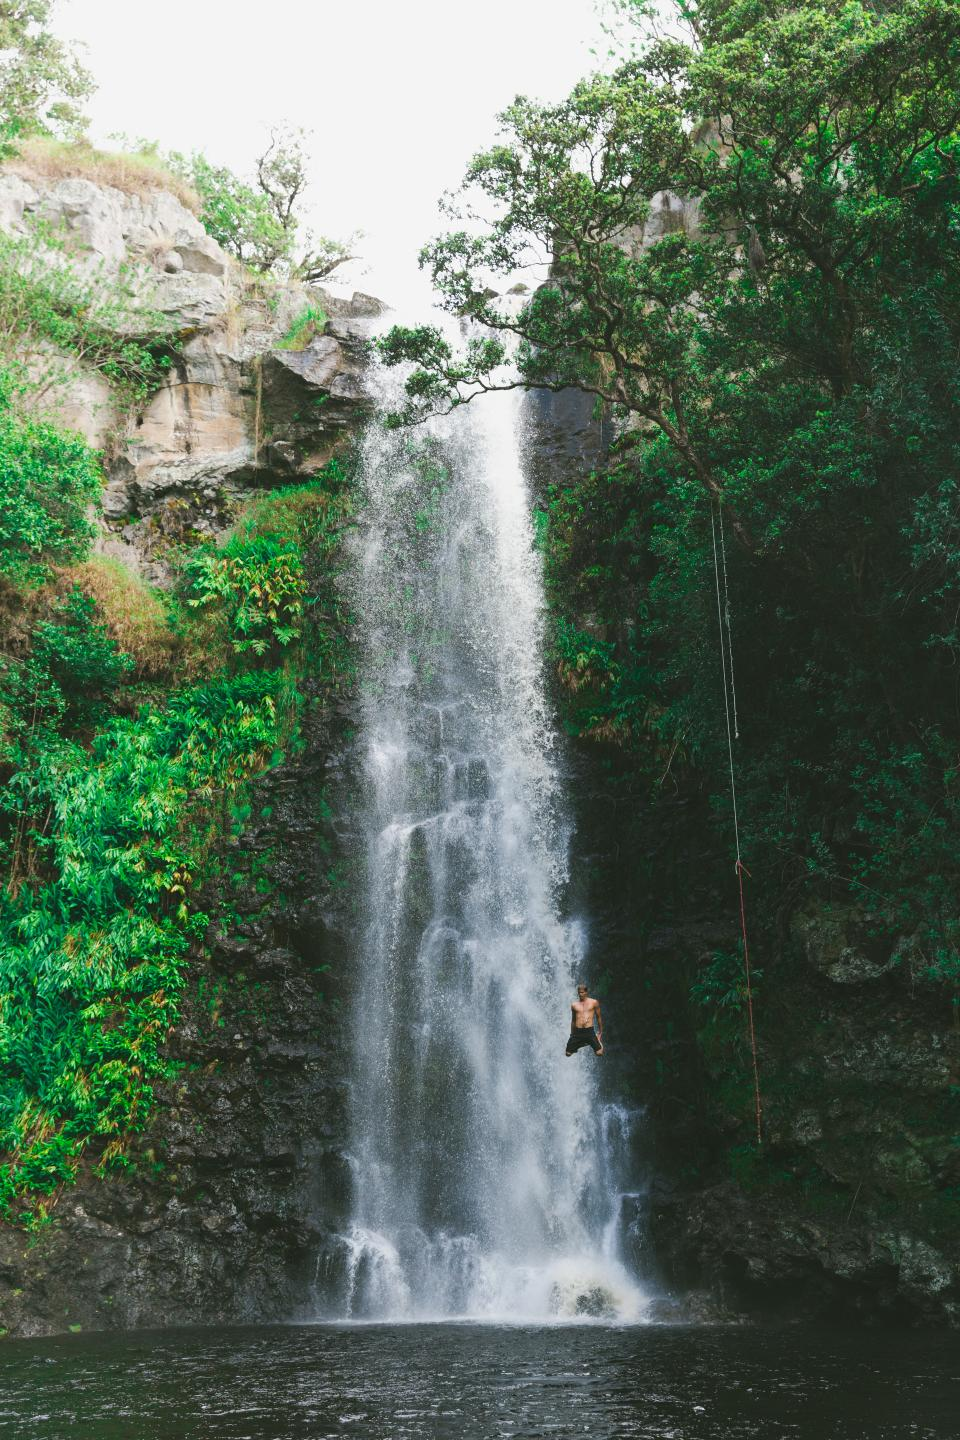 waterfall green grass moss tree plant nature water people man swimming diving adventure outdoor